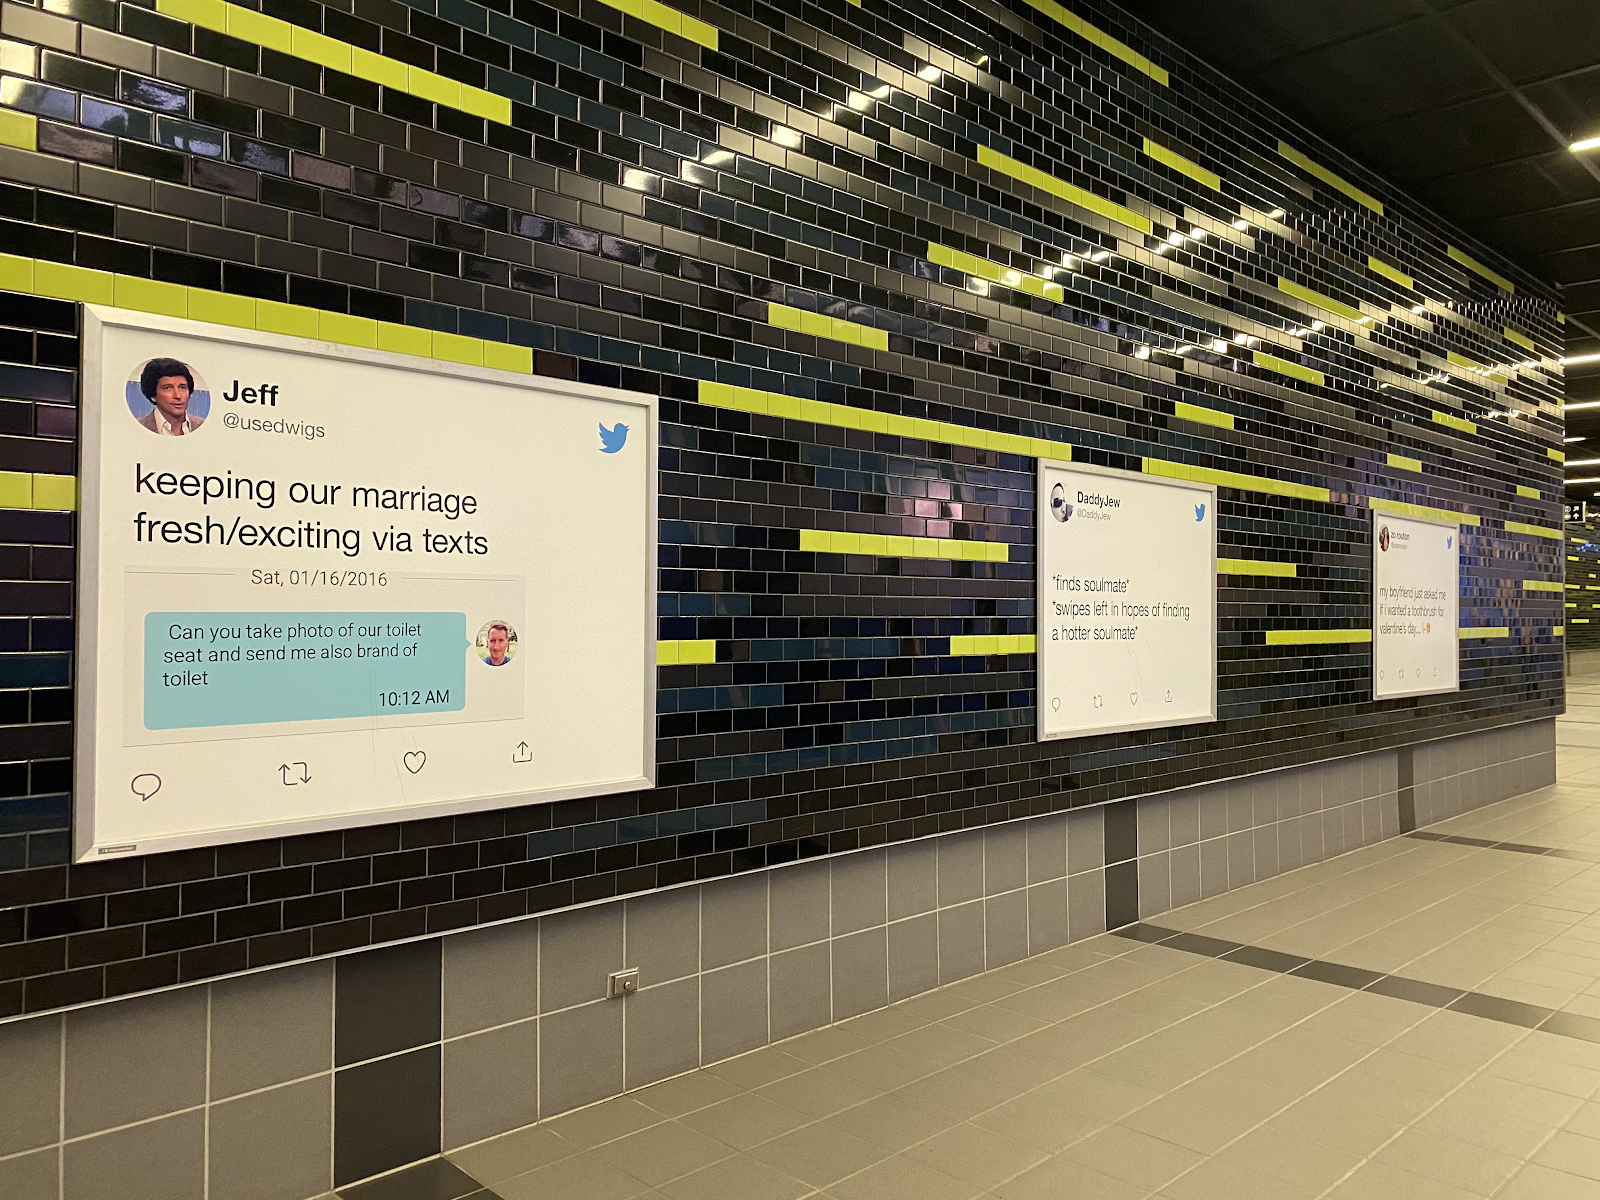 #LoveTwitter Campaign Posters in Seattle Subway